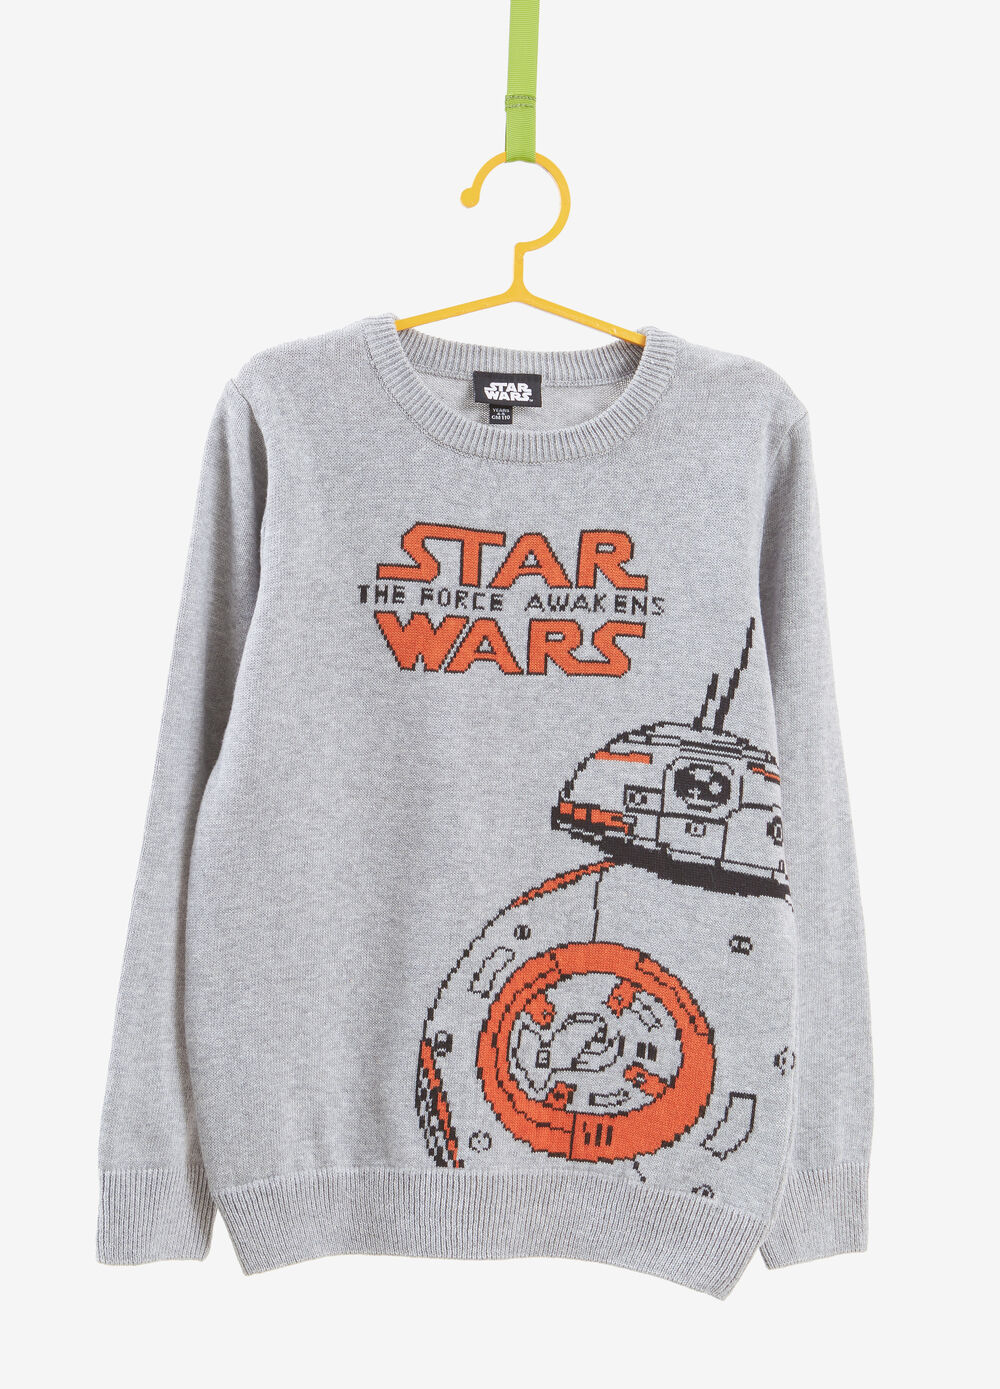 100% cotton pullover with Star Wars embroidery